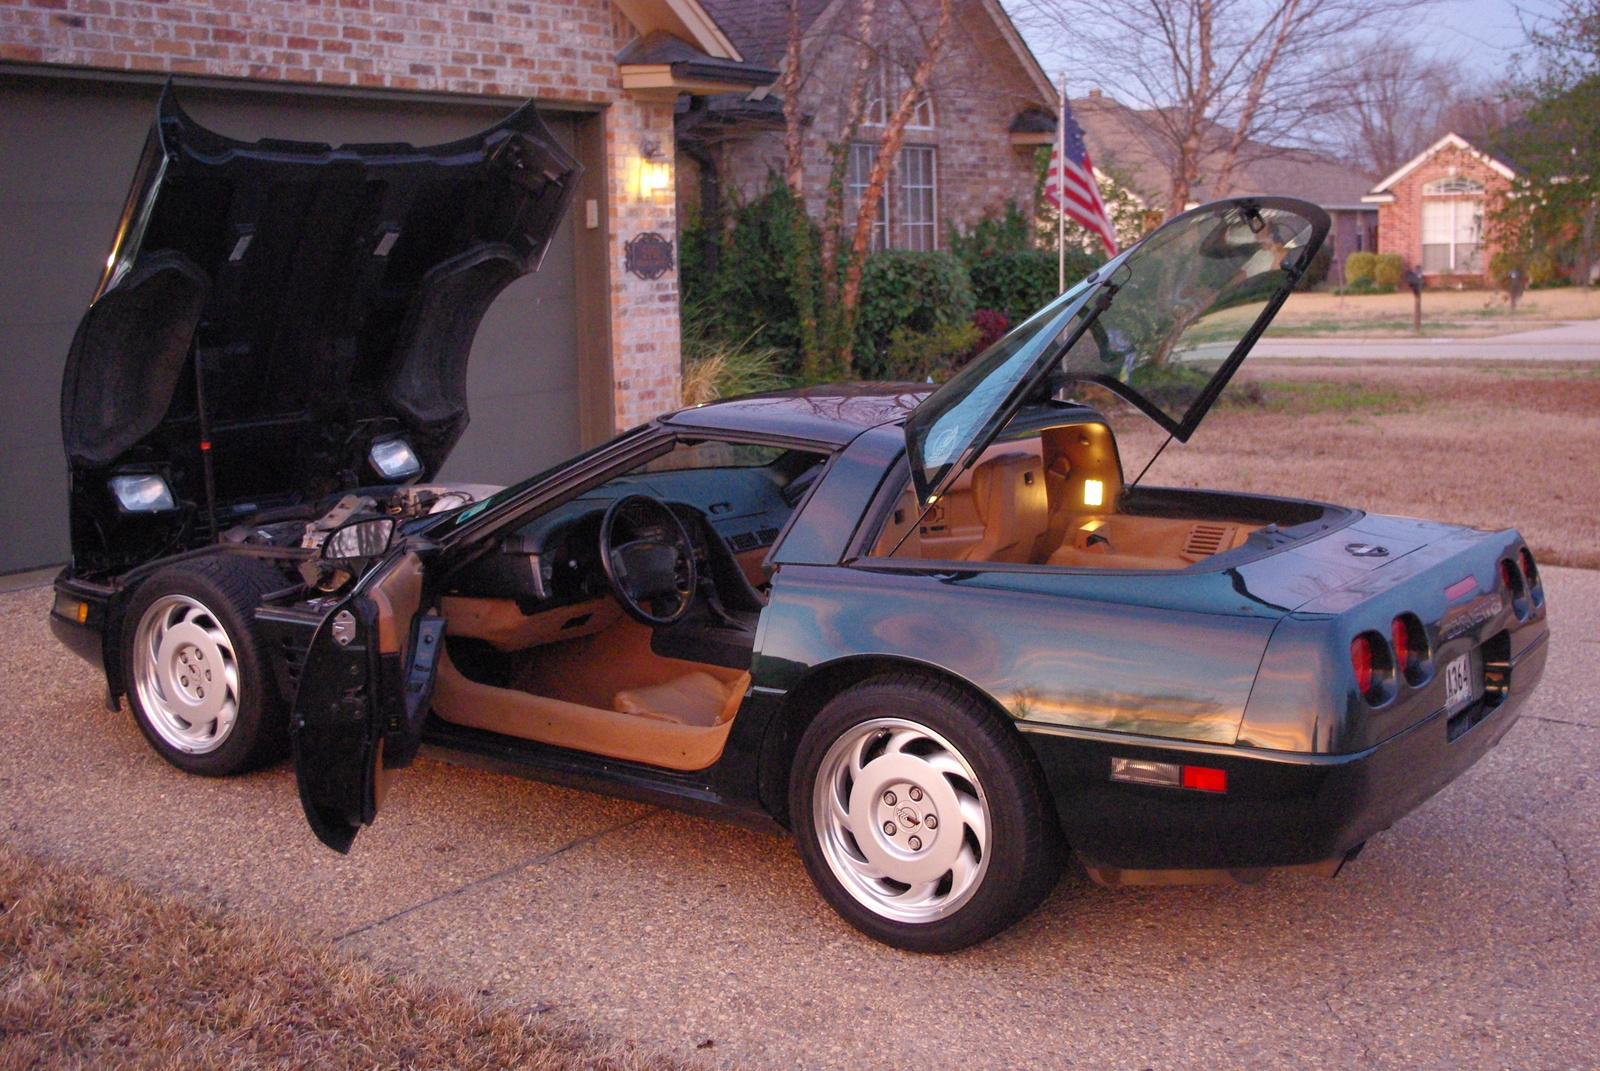 1991 Chevrolet Corvette Coupe, Picture of 1991 Chevrolet Corvette Base, interior, exterior